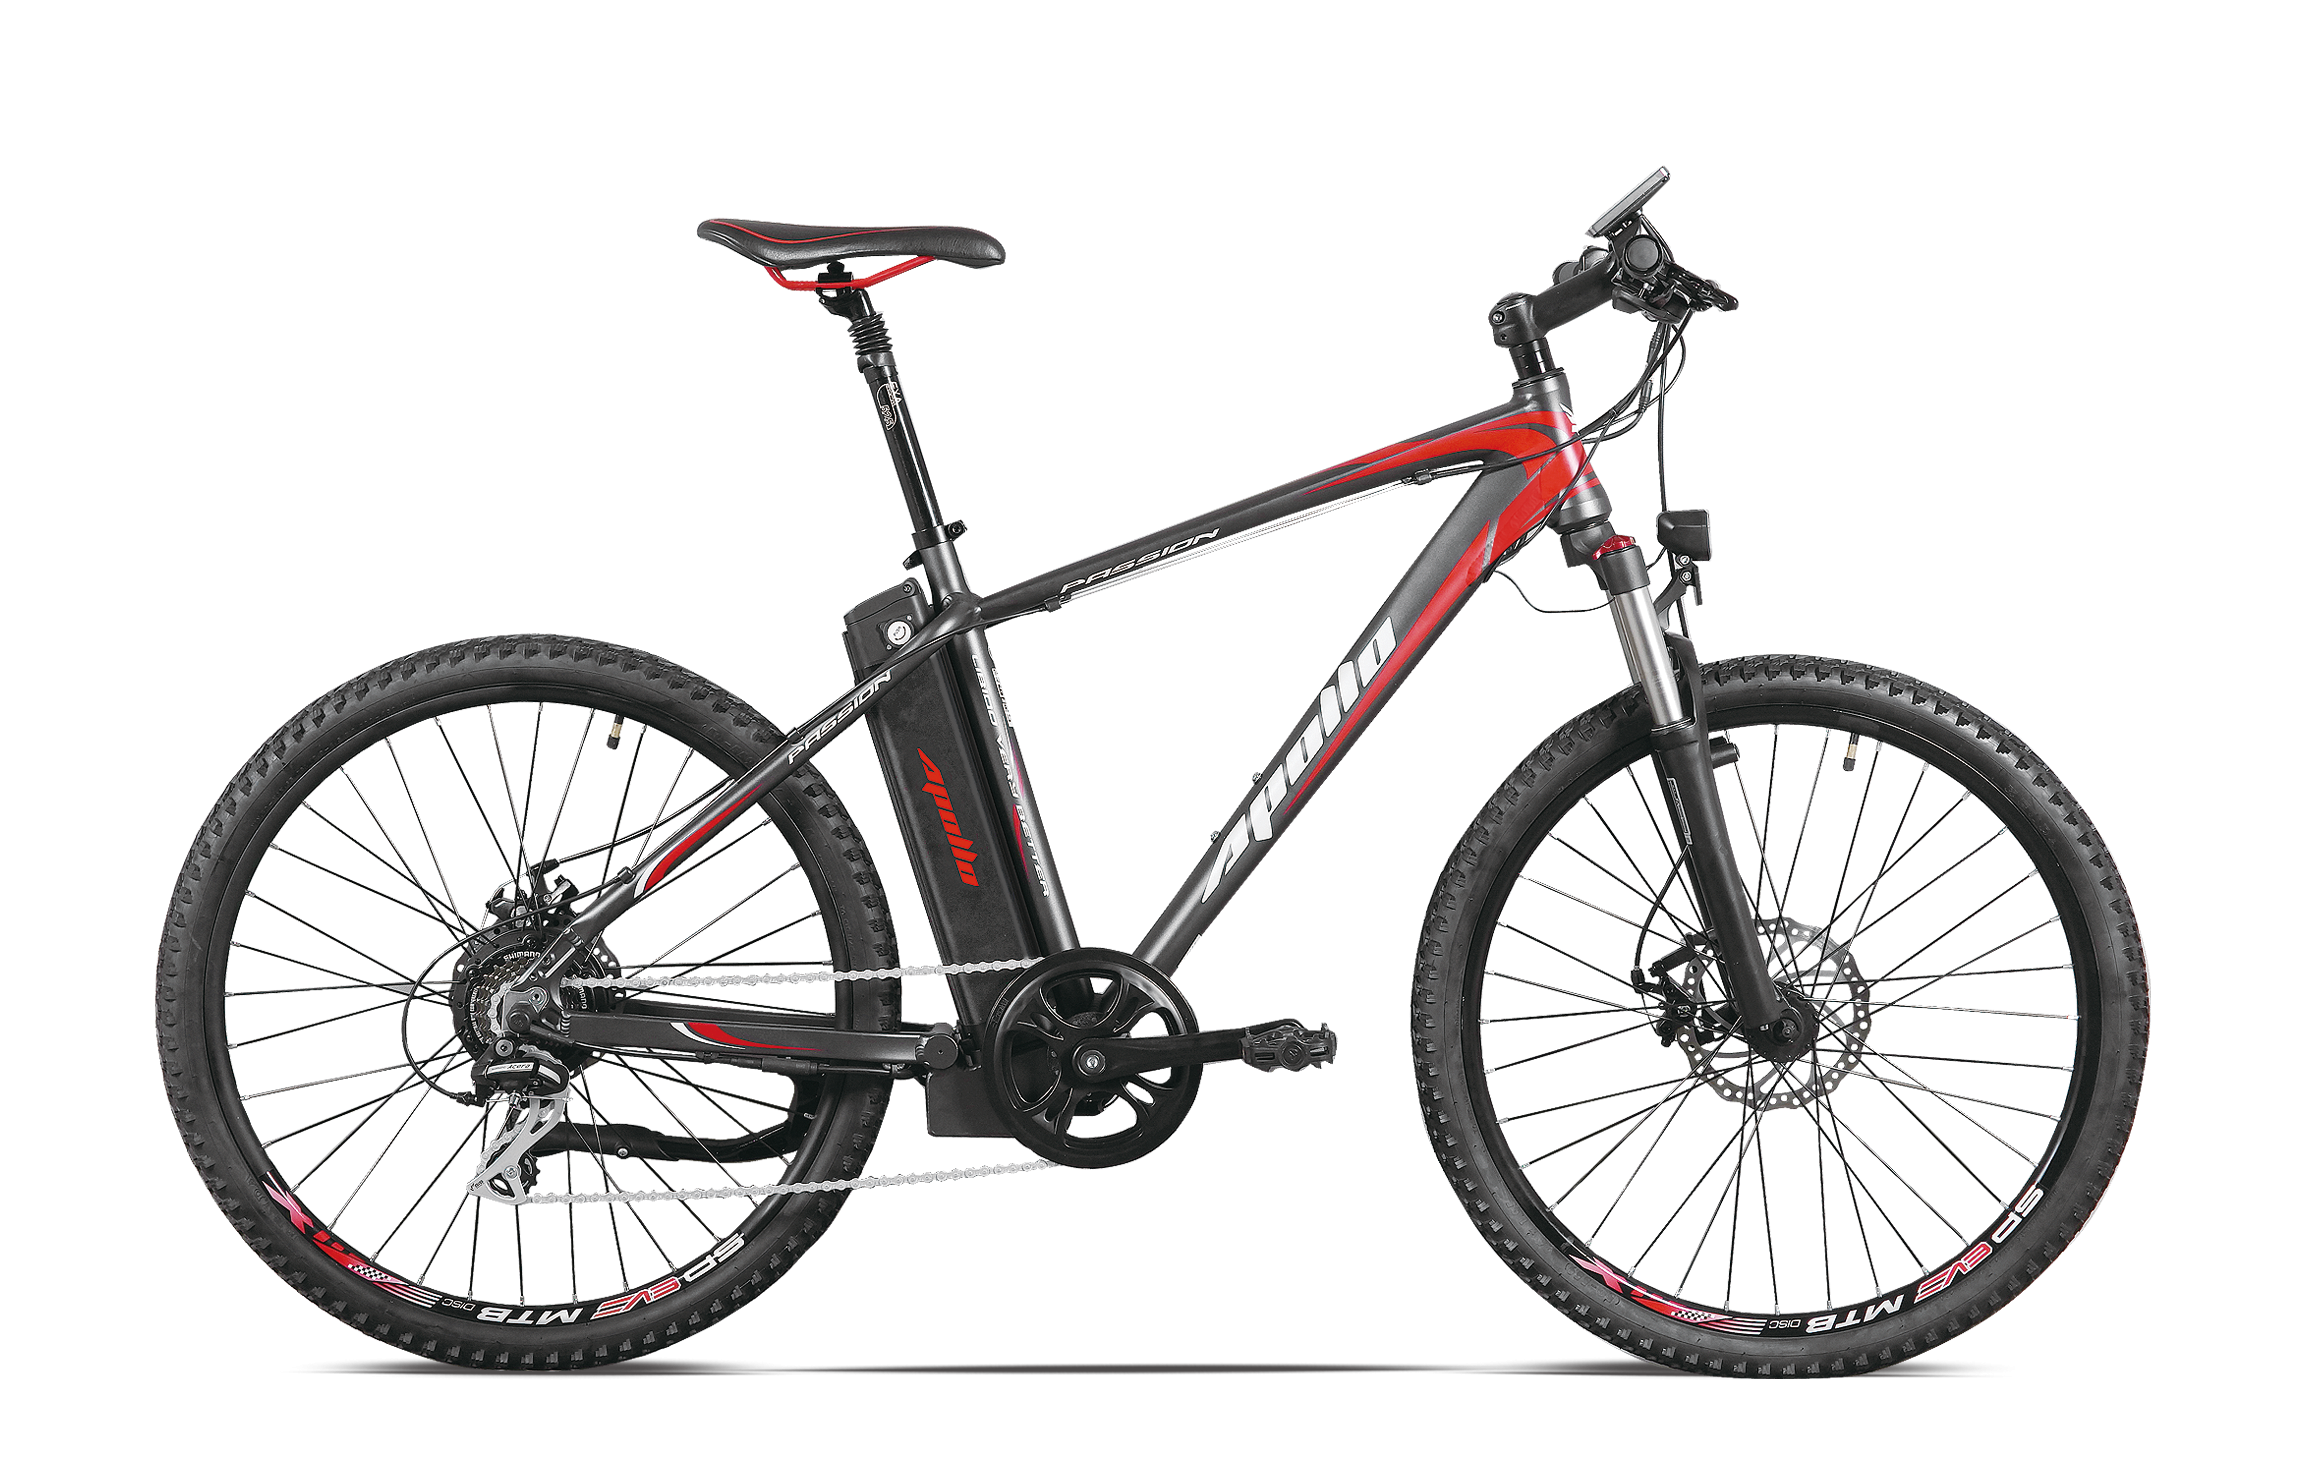 Apollo mountain bike e-bike 16 zoll günstig